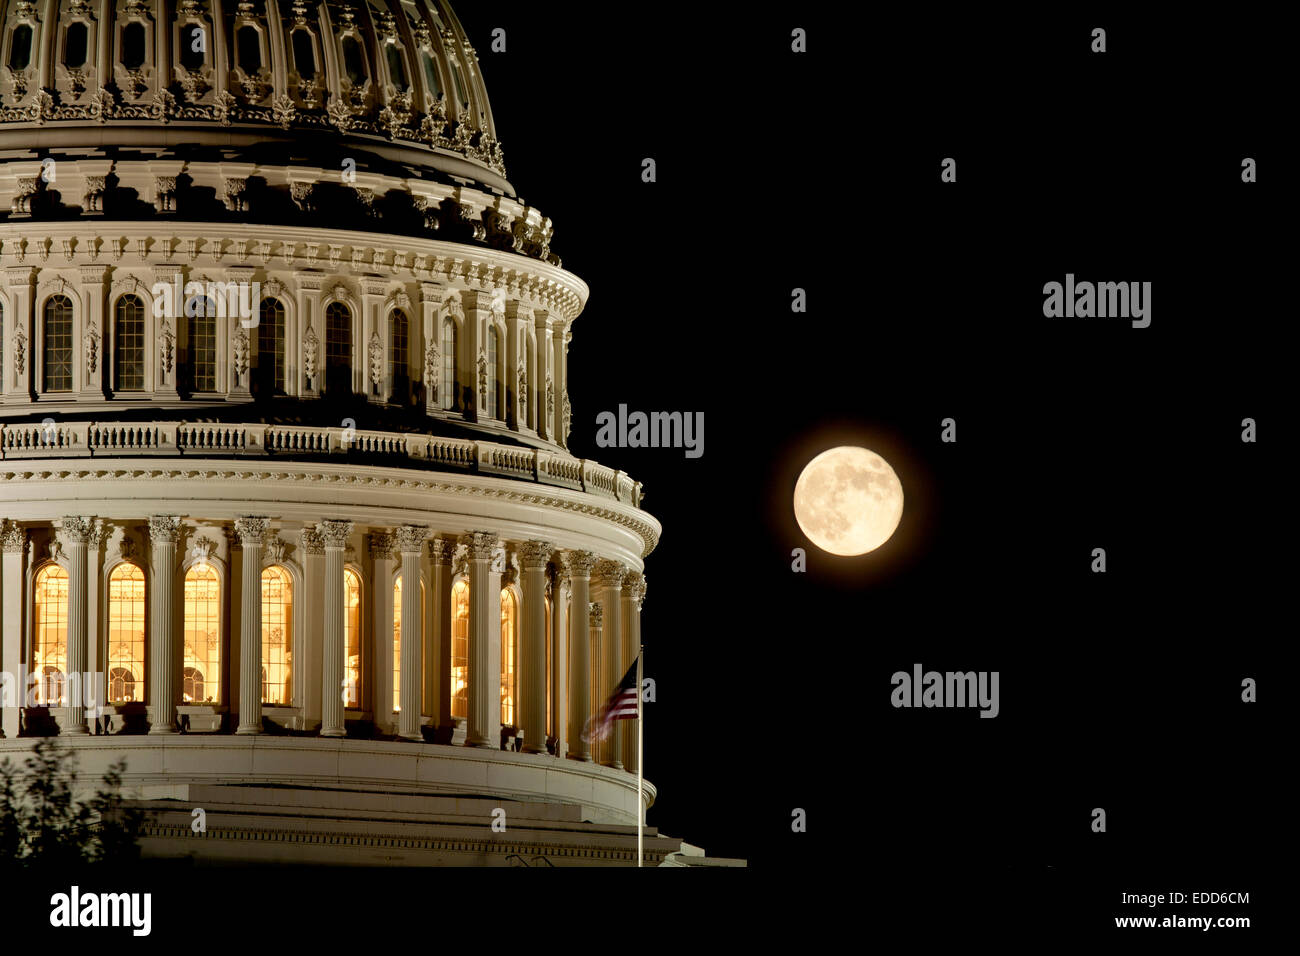 U.S. Capitol building with full moon - Stock Image